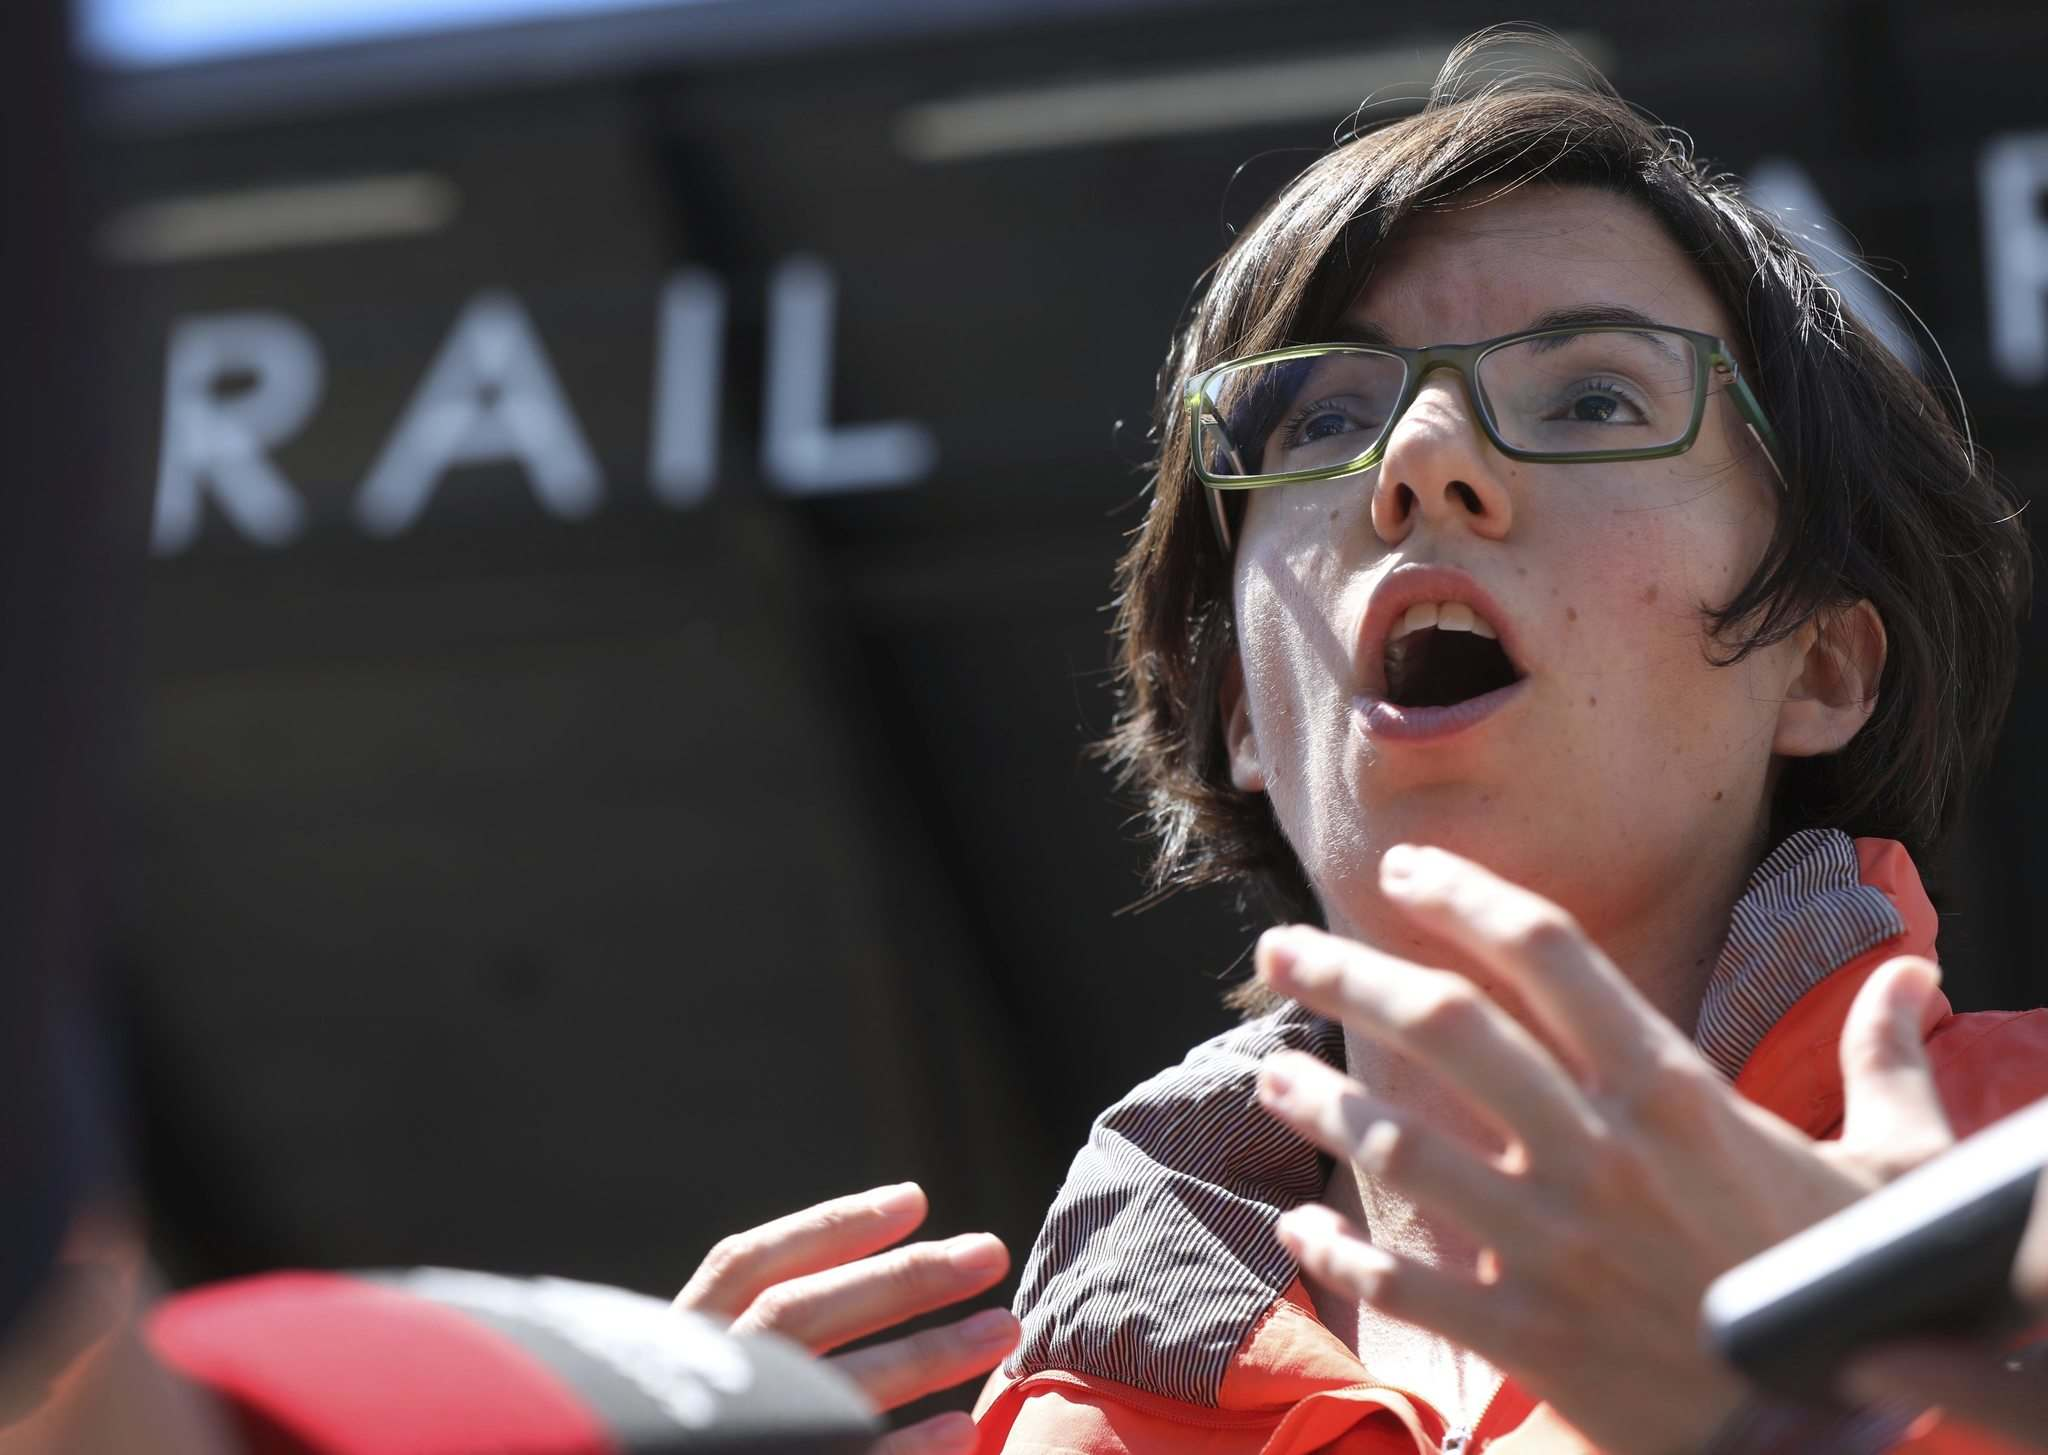 RUTH BONNEVILLE / WINNIPEG FREE PRESS</p><p>Niki Ashton, MP of Churchill—Keewatinook Aski, passionately describes to the media the frustration the community of Churchill has with OminiTRAX backing down on fixing the rail line to their community after visiting Churchill and listening to residents yesterday. Ashton held a press conference outside Union Station in Winnipeg Wednesday.</p><p>See Alex Paul story.</p><p>July 04,2018</p>